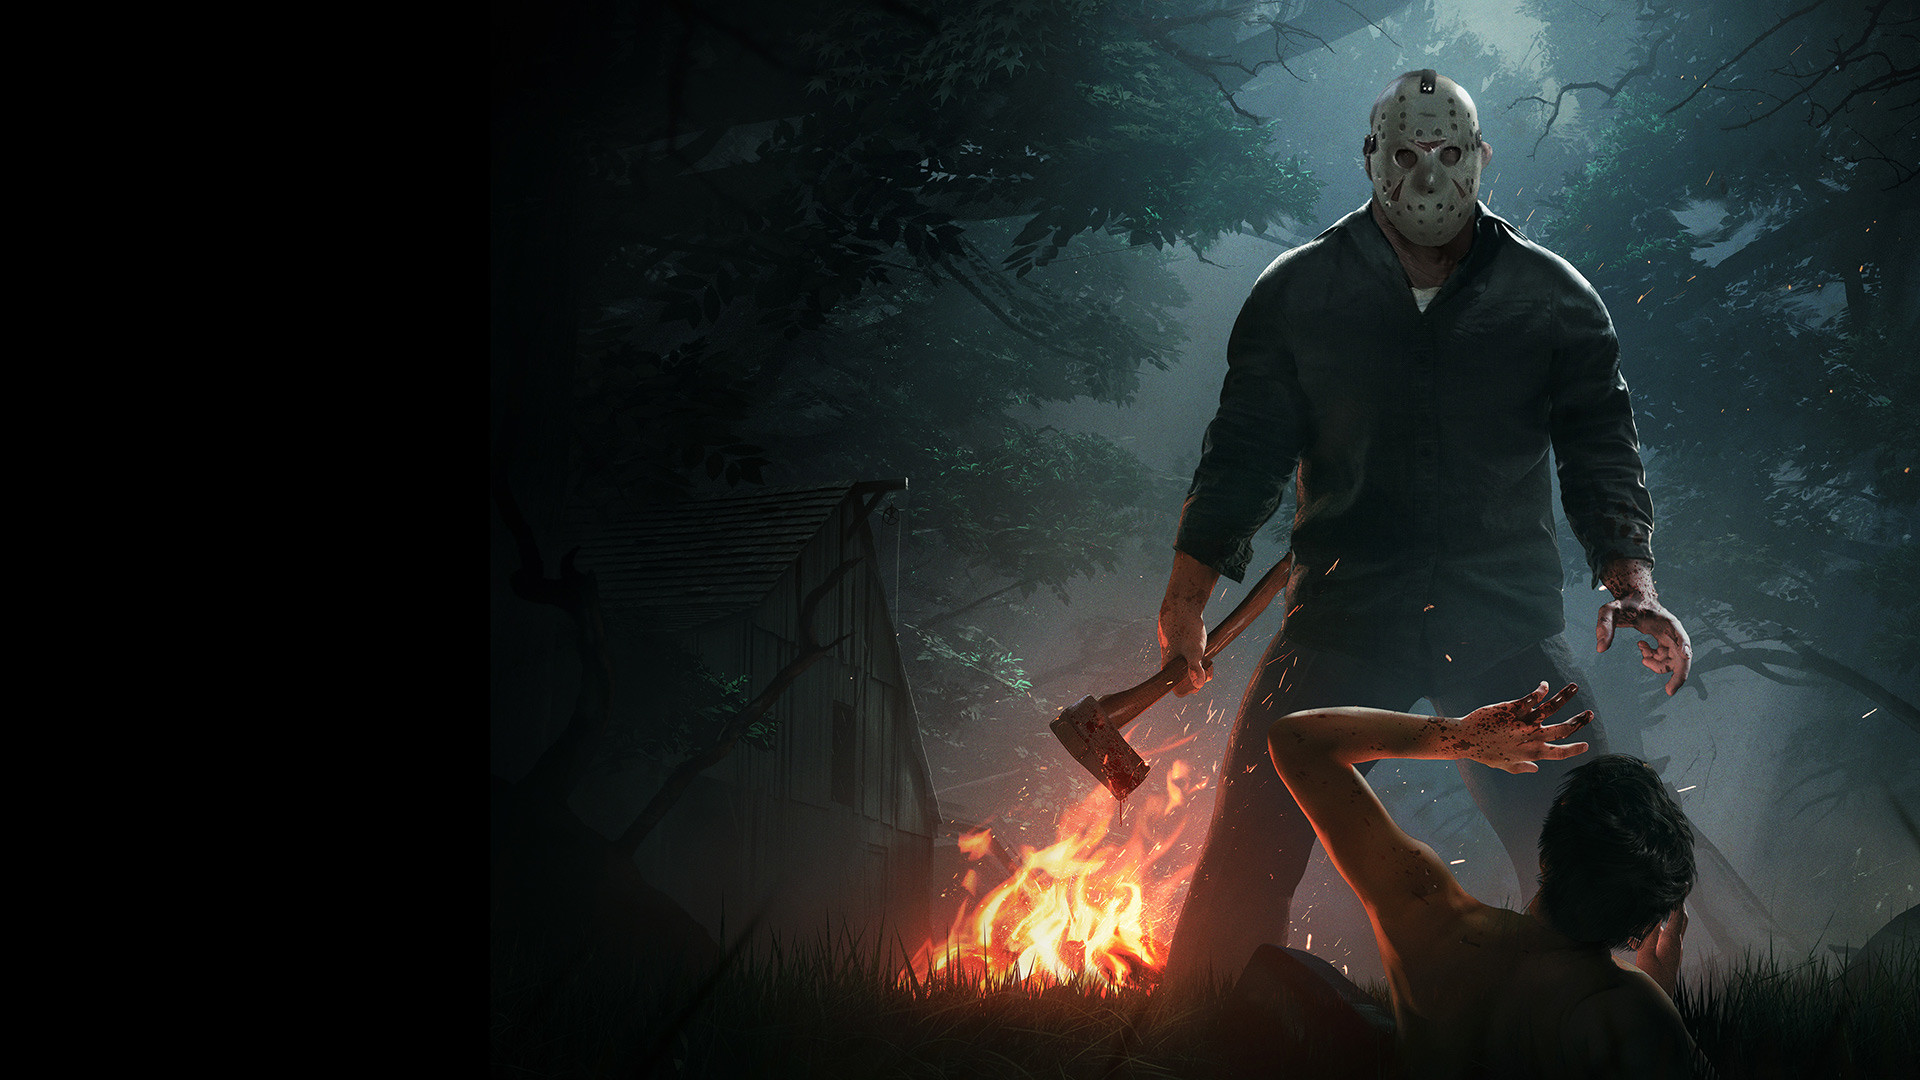 Don't scream: The new 'Friday the 13th' game is out today – Daily Tech Whip  | Daily Tech Whip